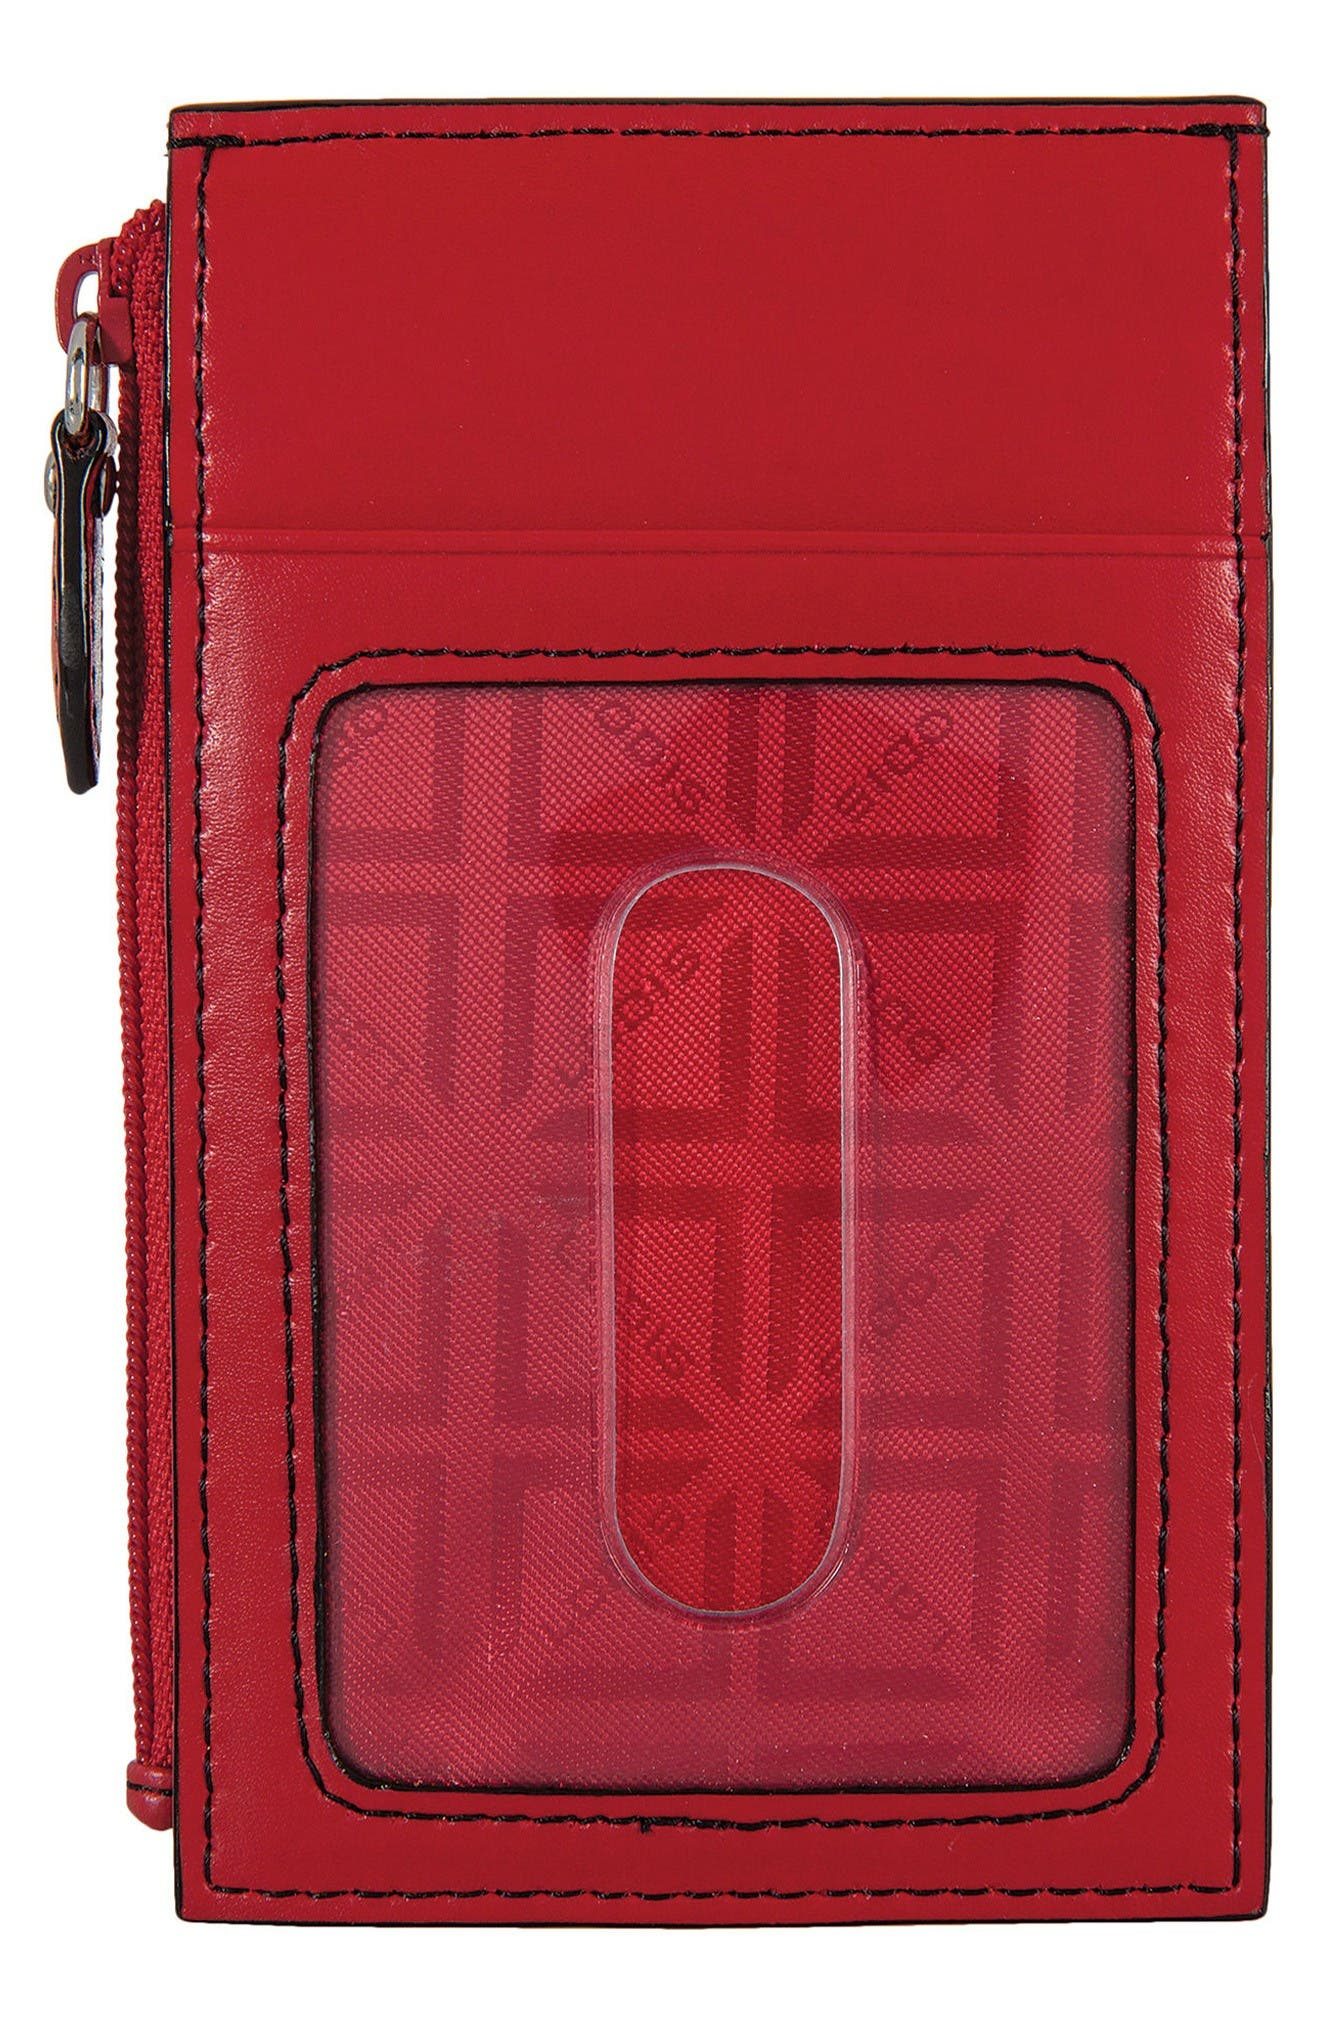 Lodis Audrey Ina Card Case,                             Alternate thumbnail 2, color,                             Red